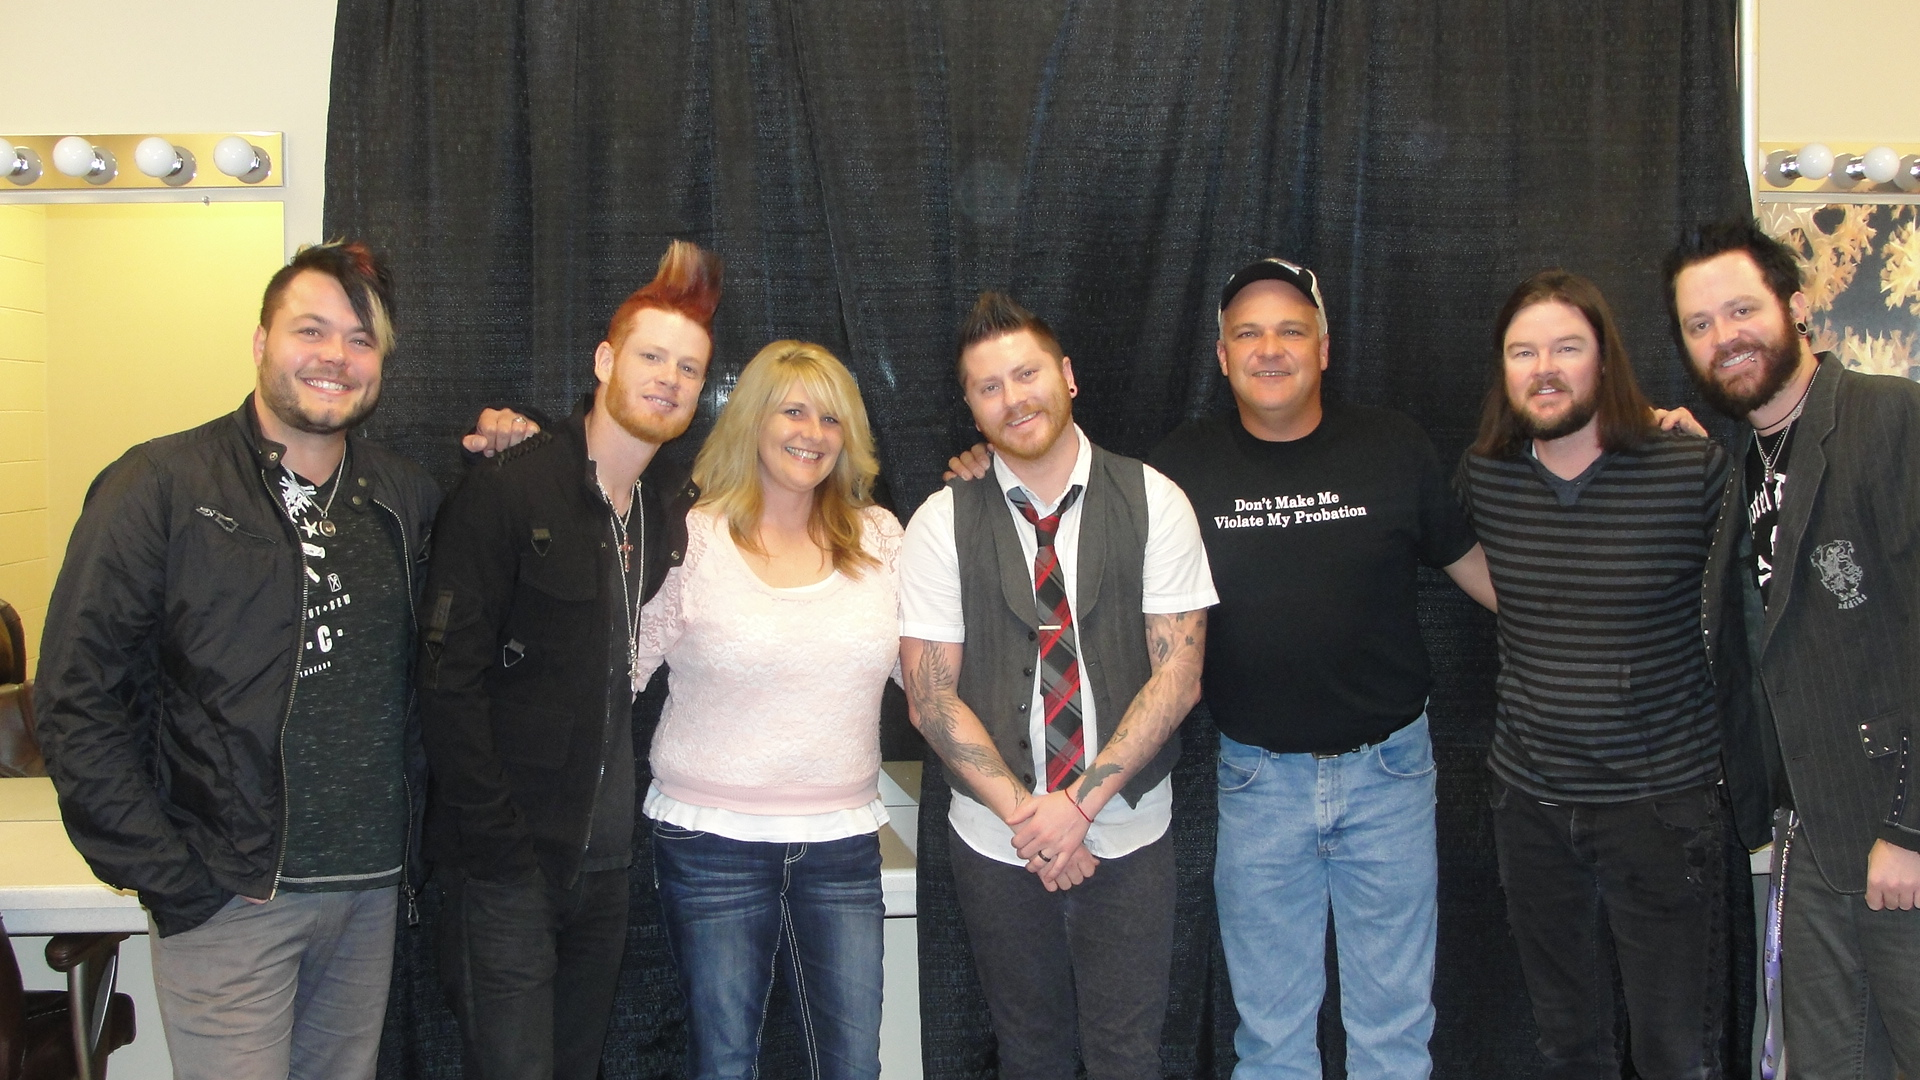 Meet Greet With Hinder Jay Jamesons Total Experience At Island